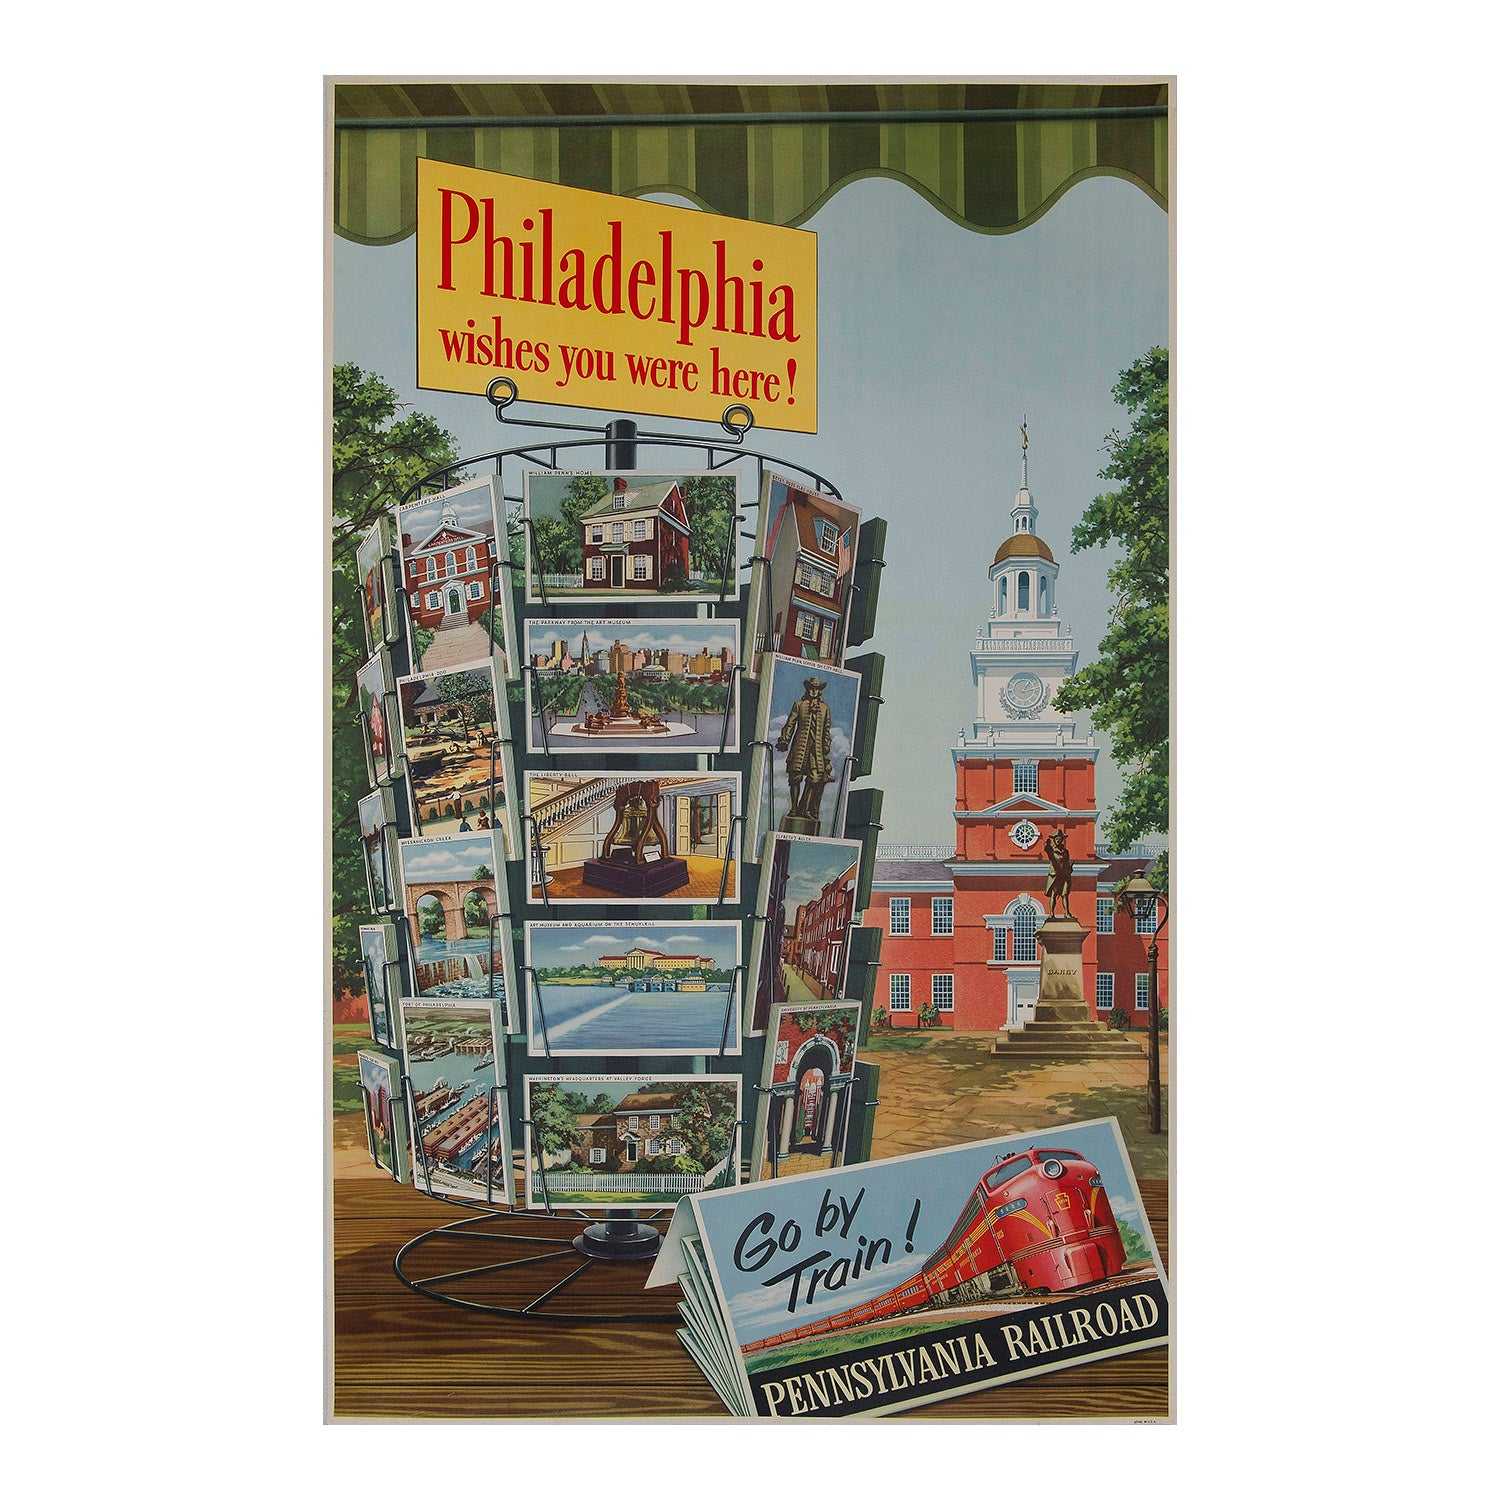 Philadelphia Wishes You Were Here !